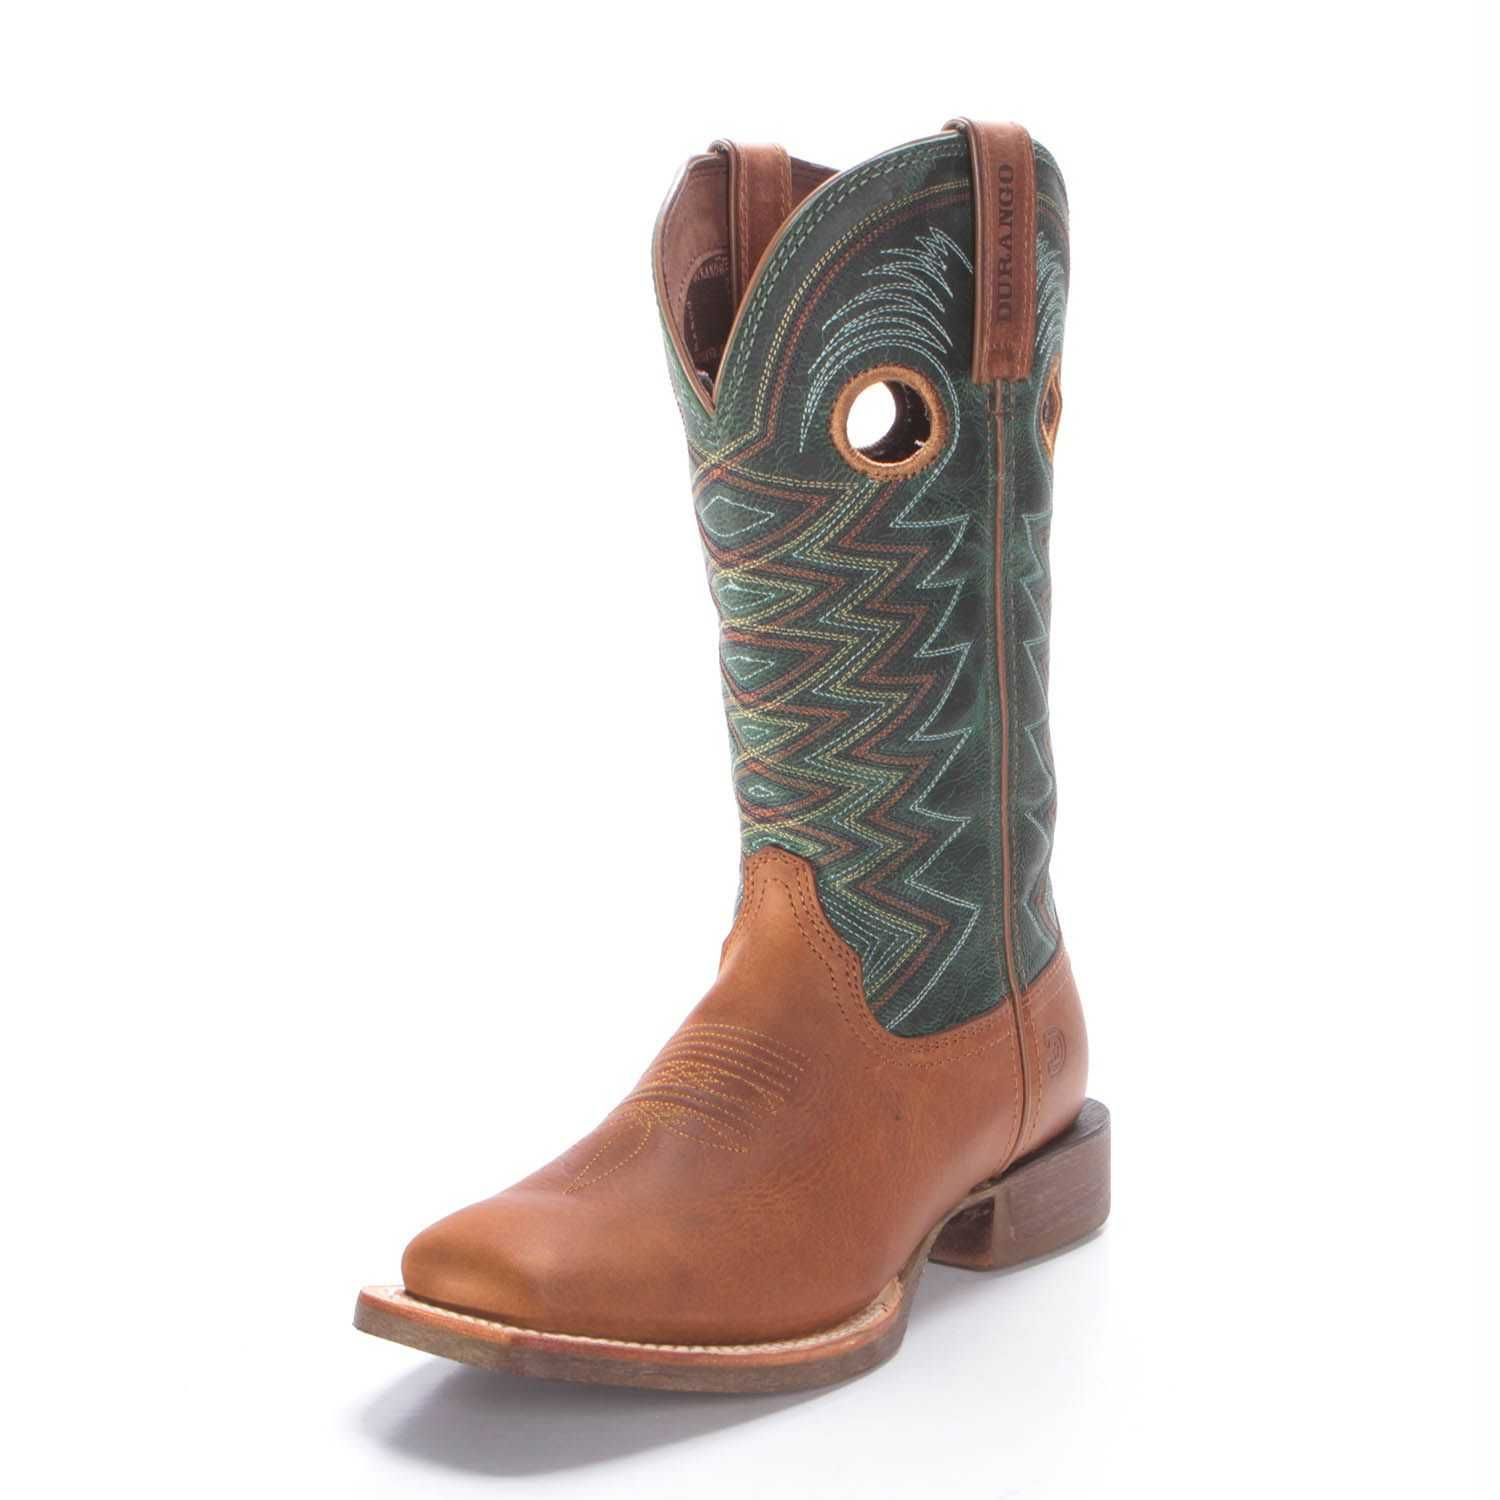 3c4f729c9be Durango Lady Rebel Square Toe Western Boots DRD0353M